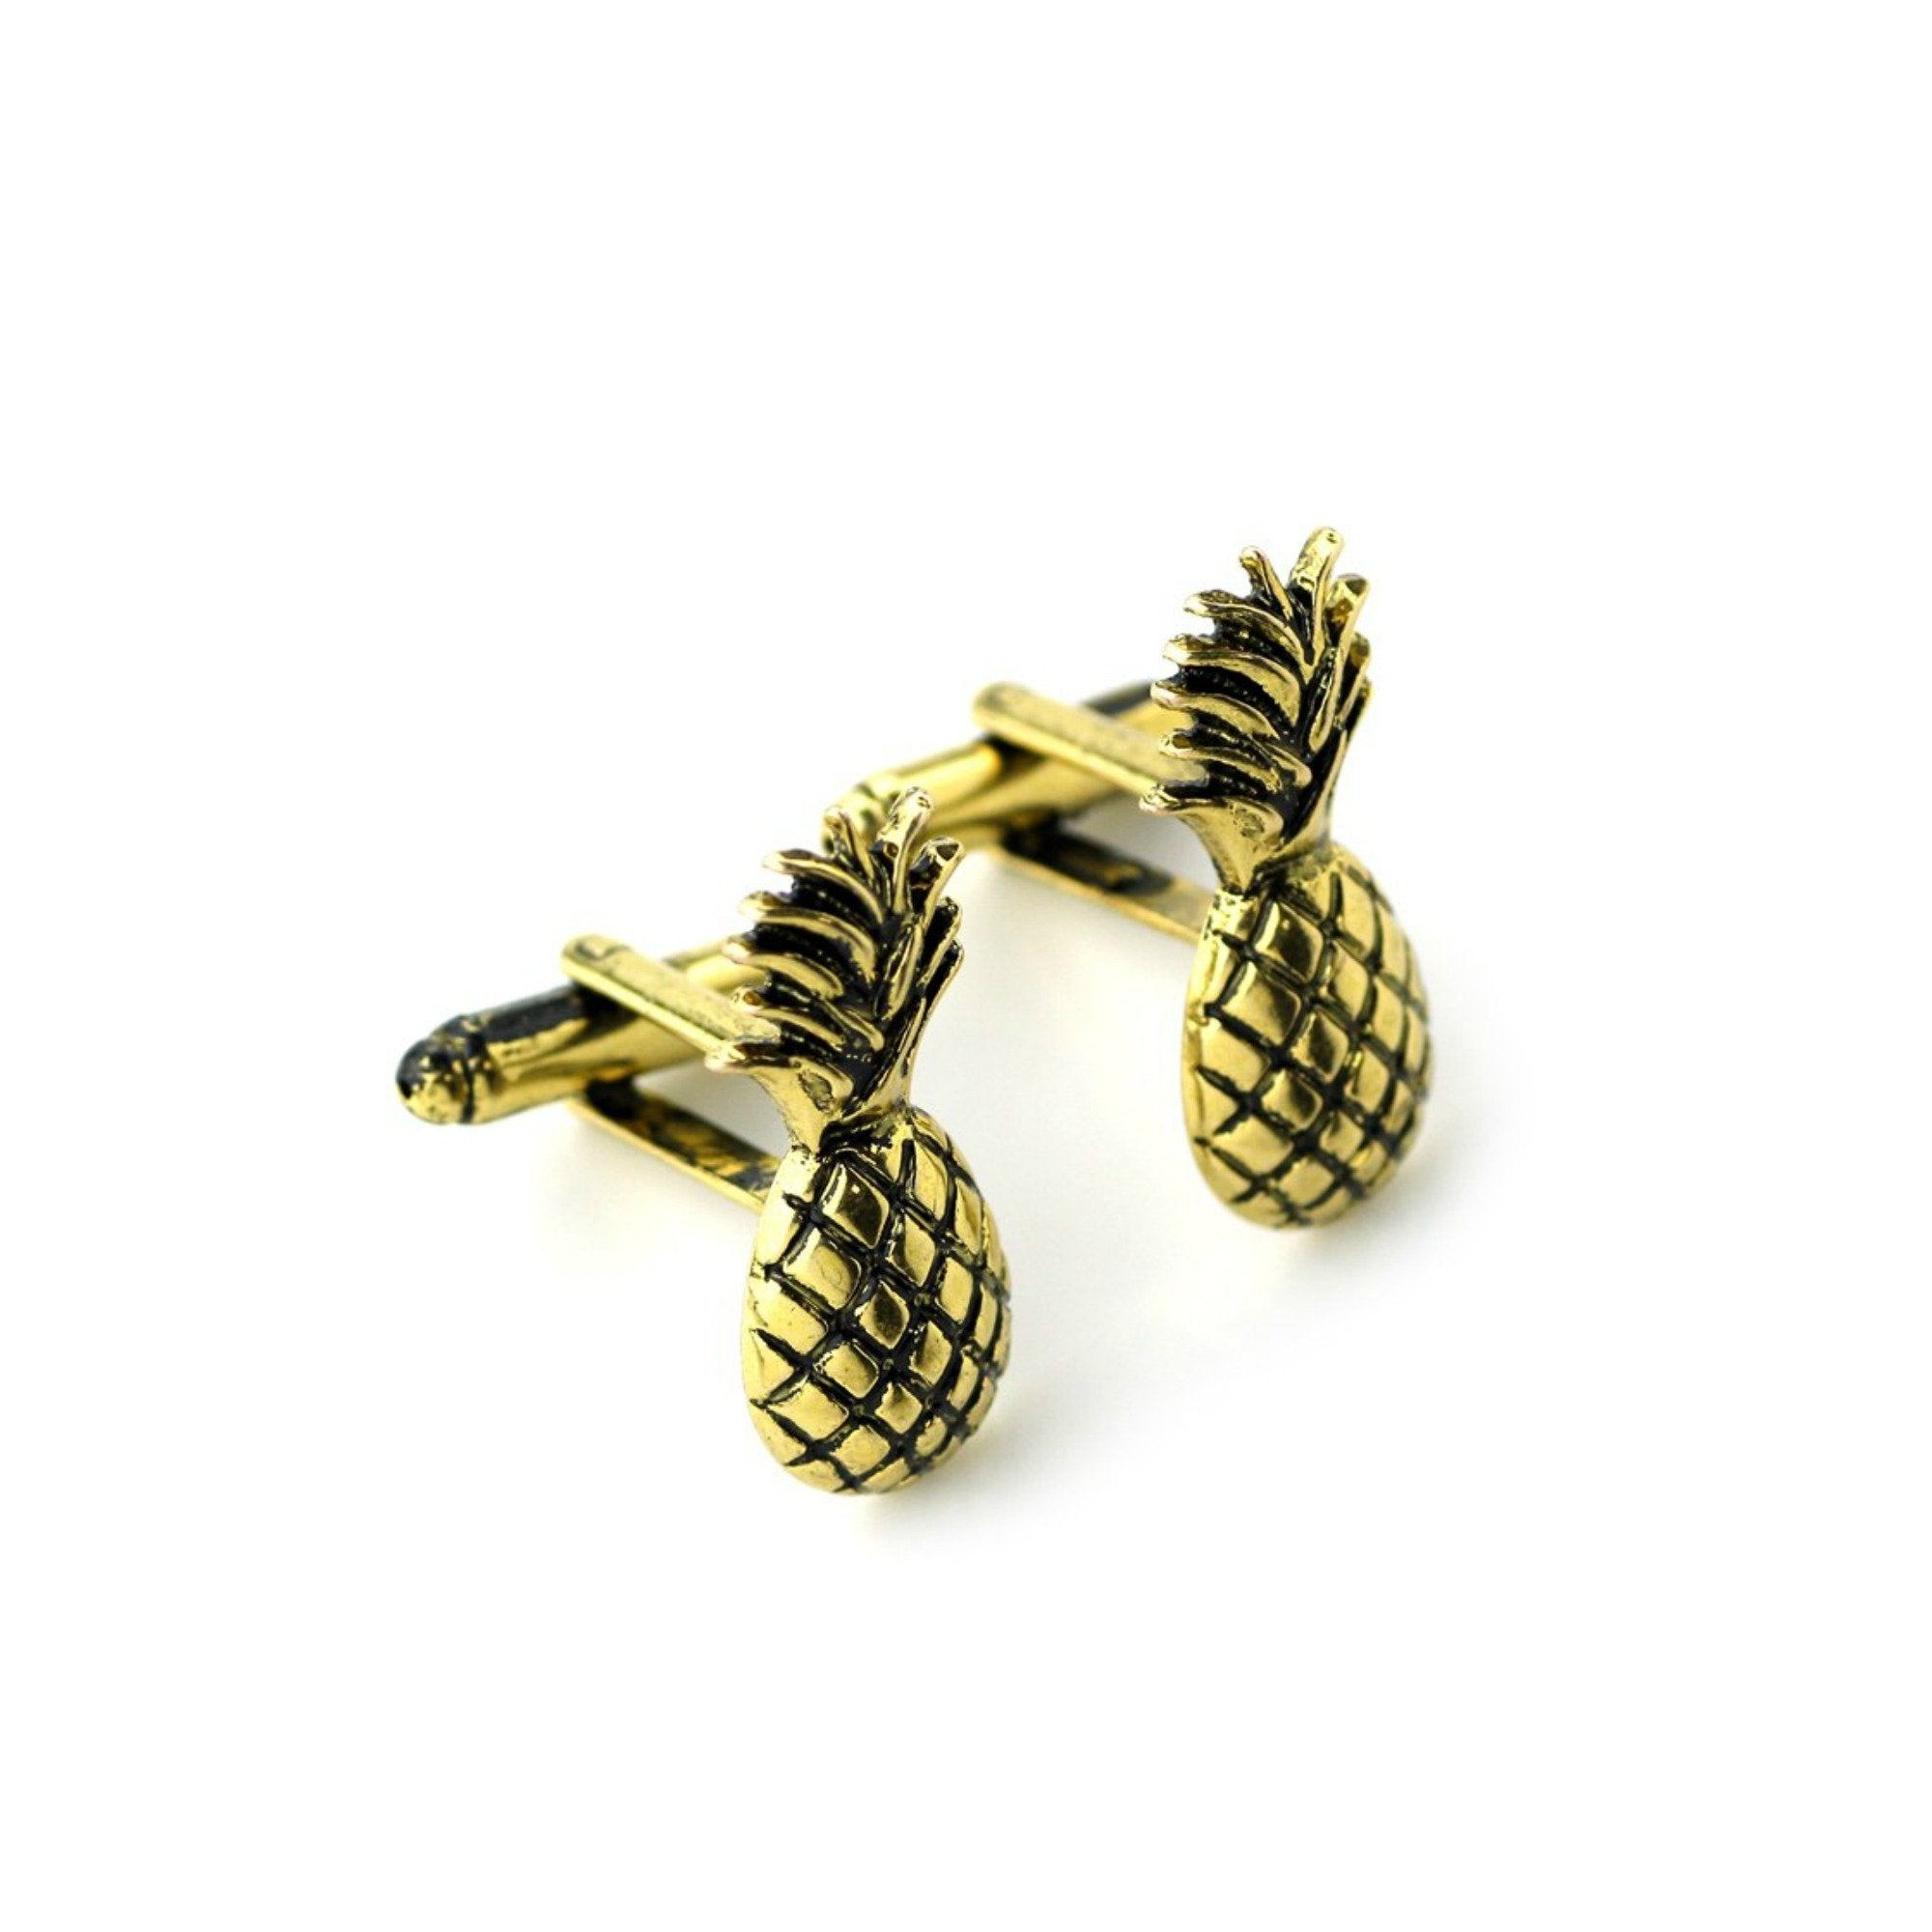 Bronze Pineapple Cufflinks - Minimum Mouse